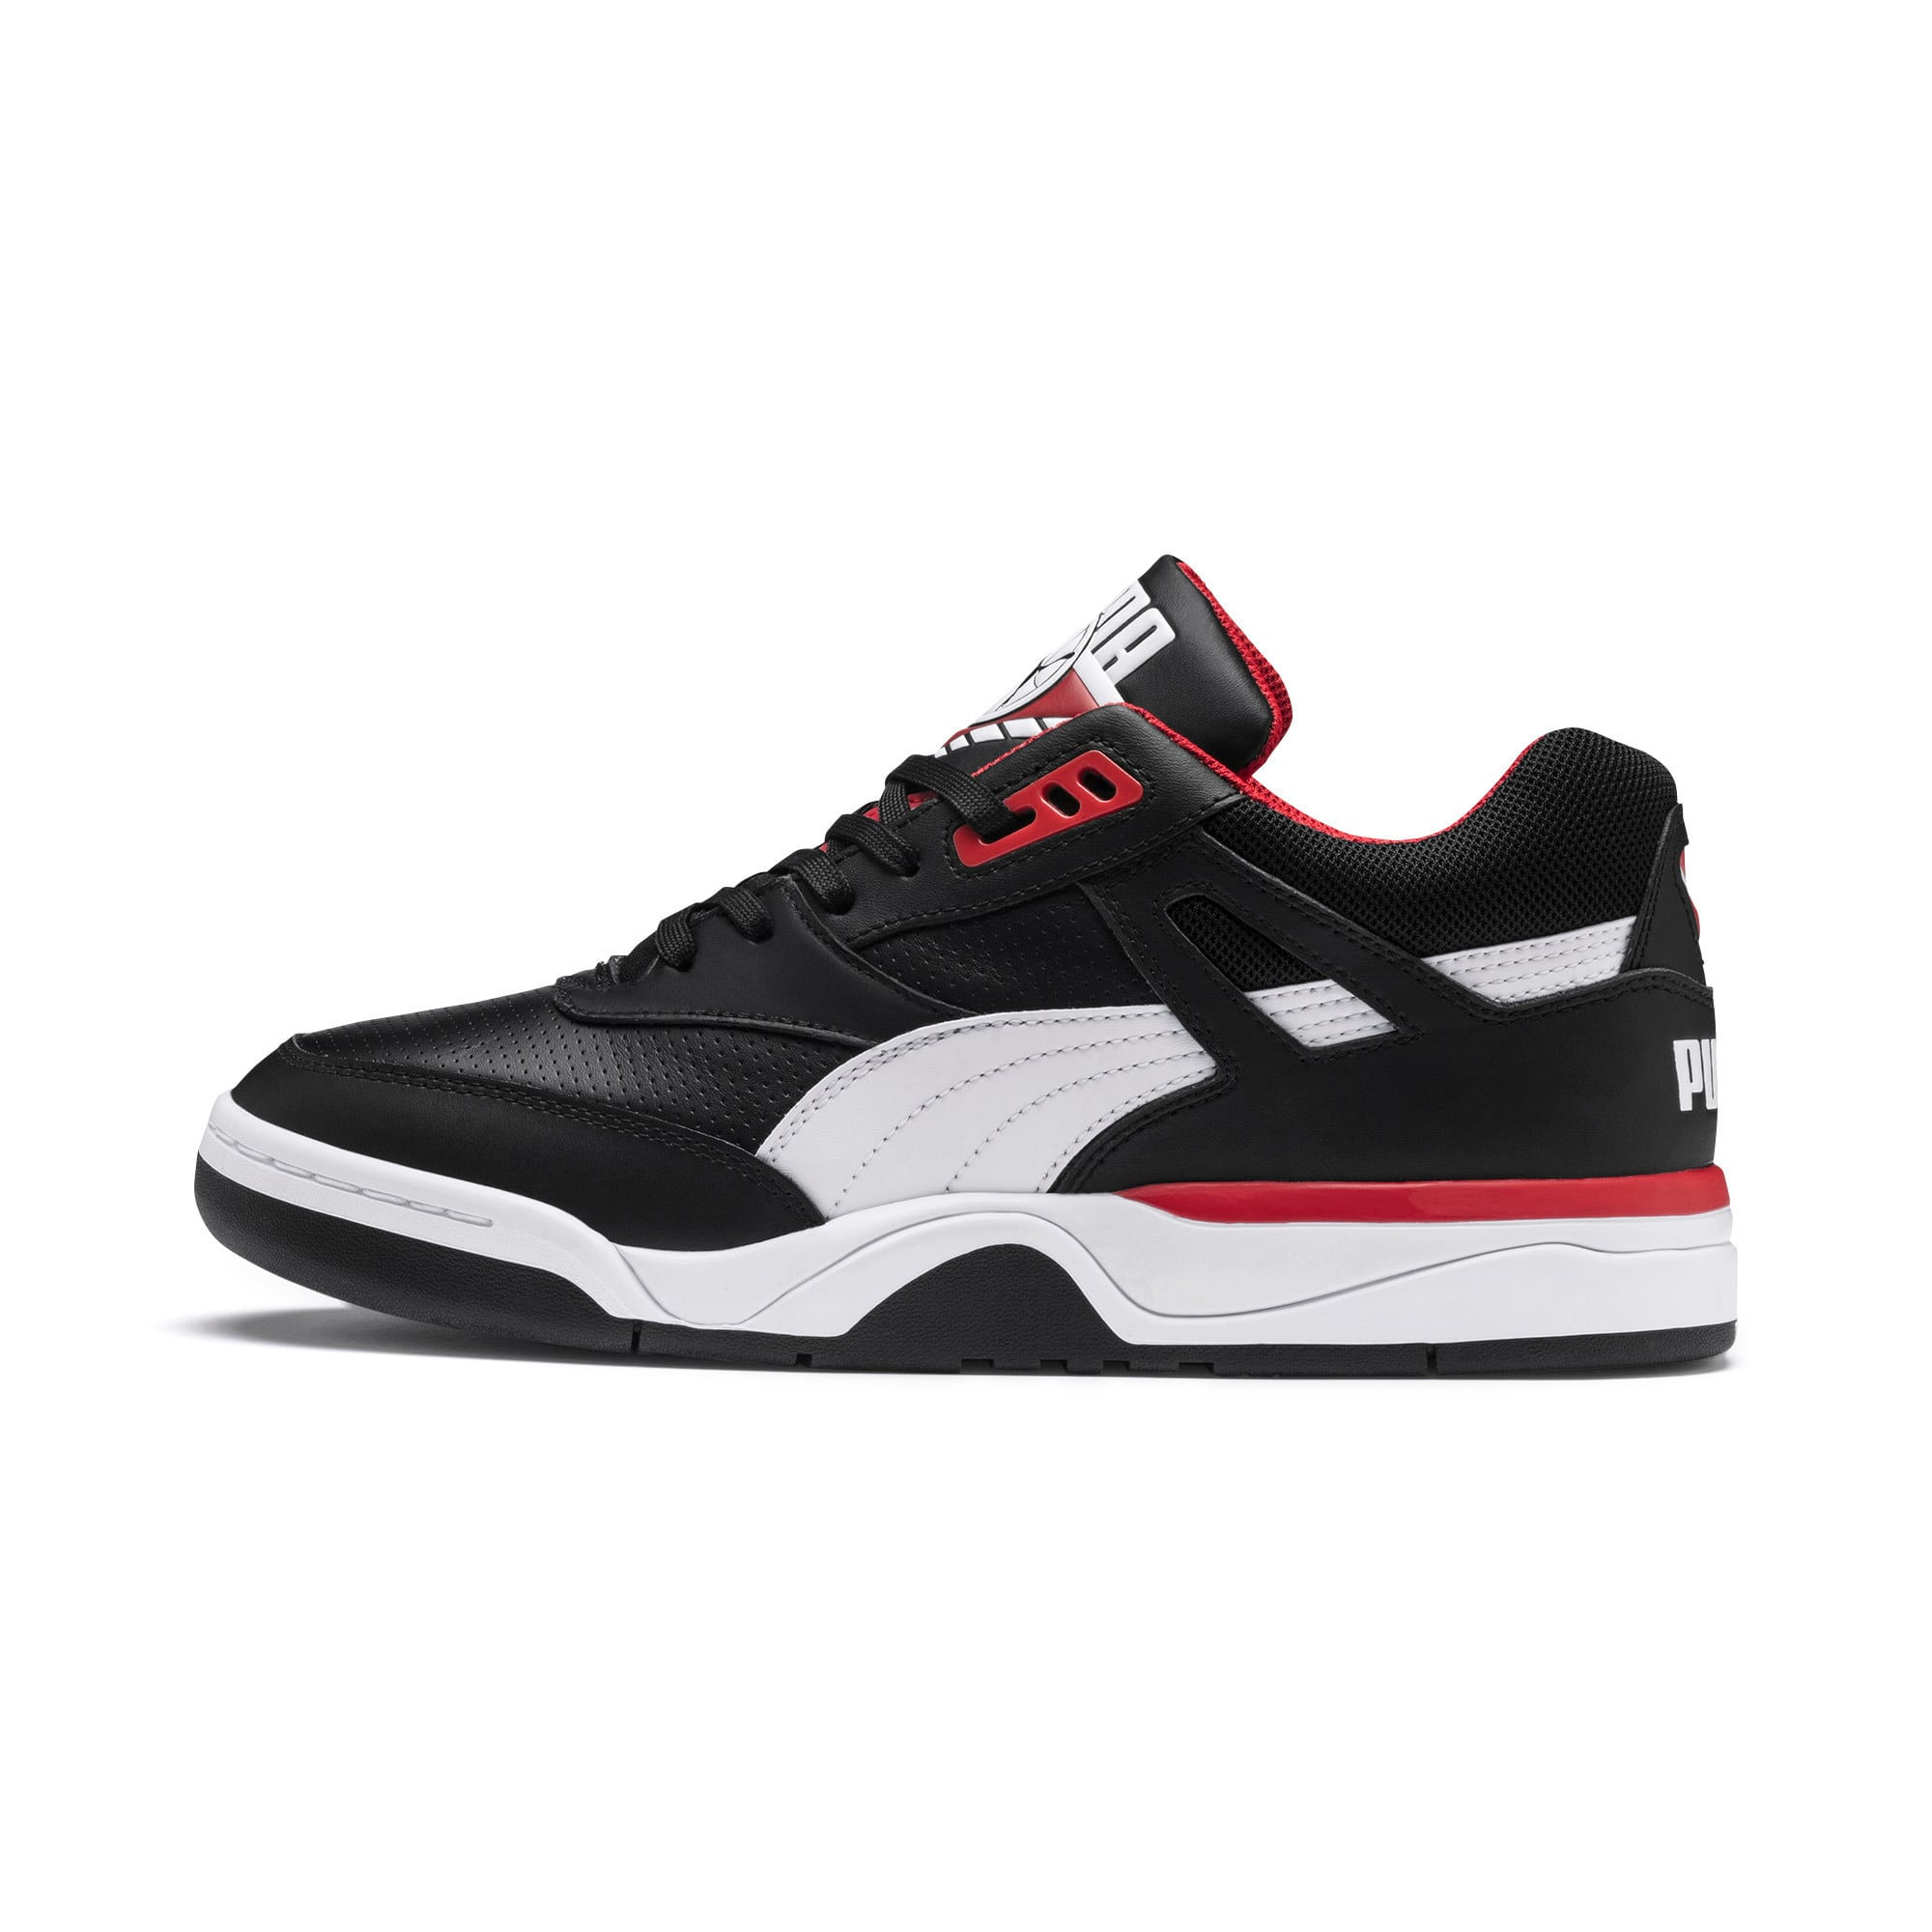 Thumbnail 1 of Palace Guard Sneakers, Puma Black-Puma White-red, medium